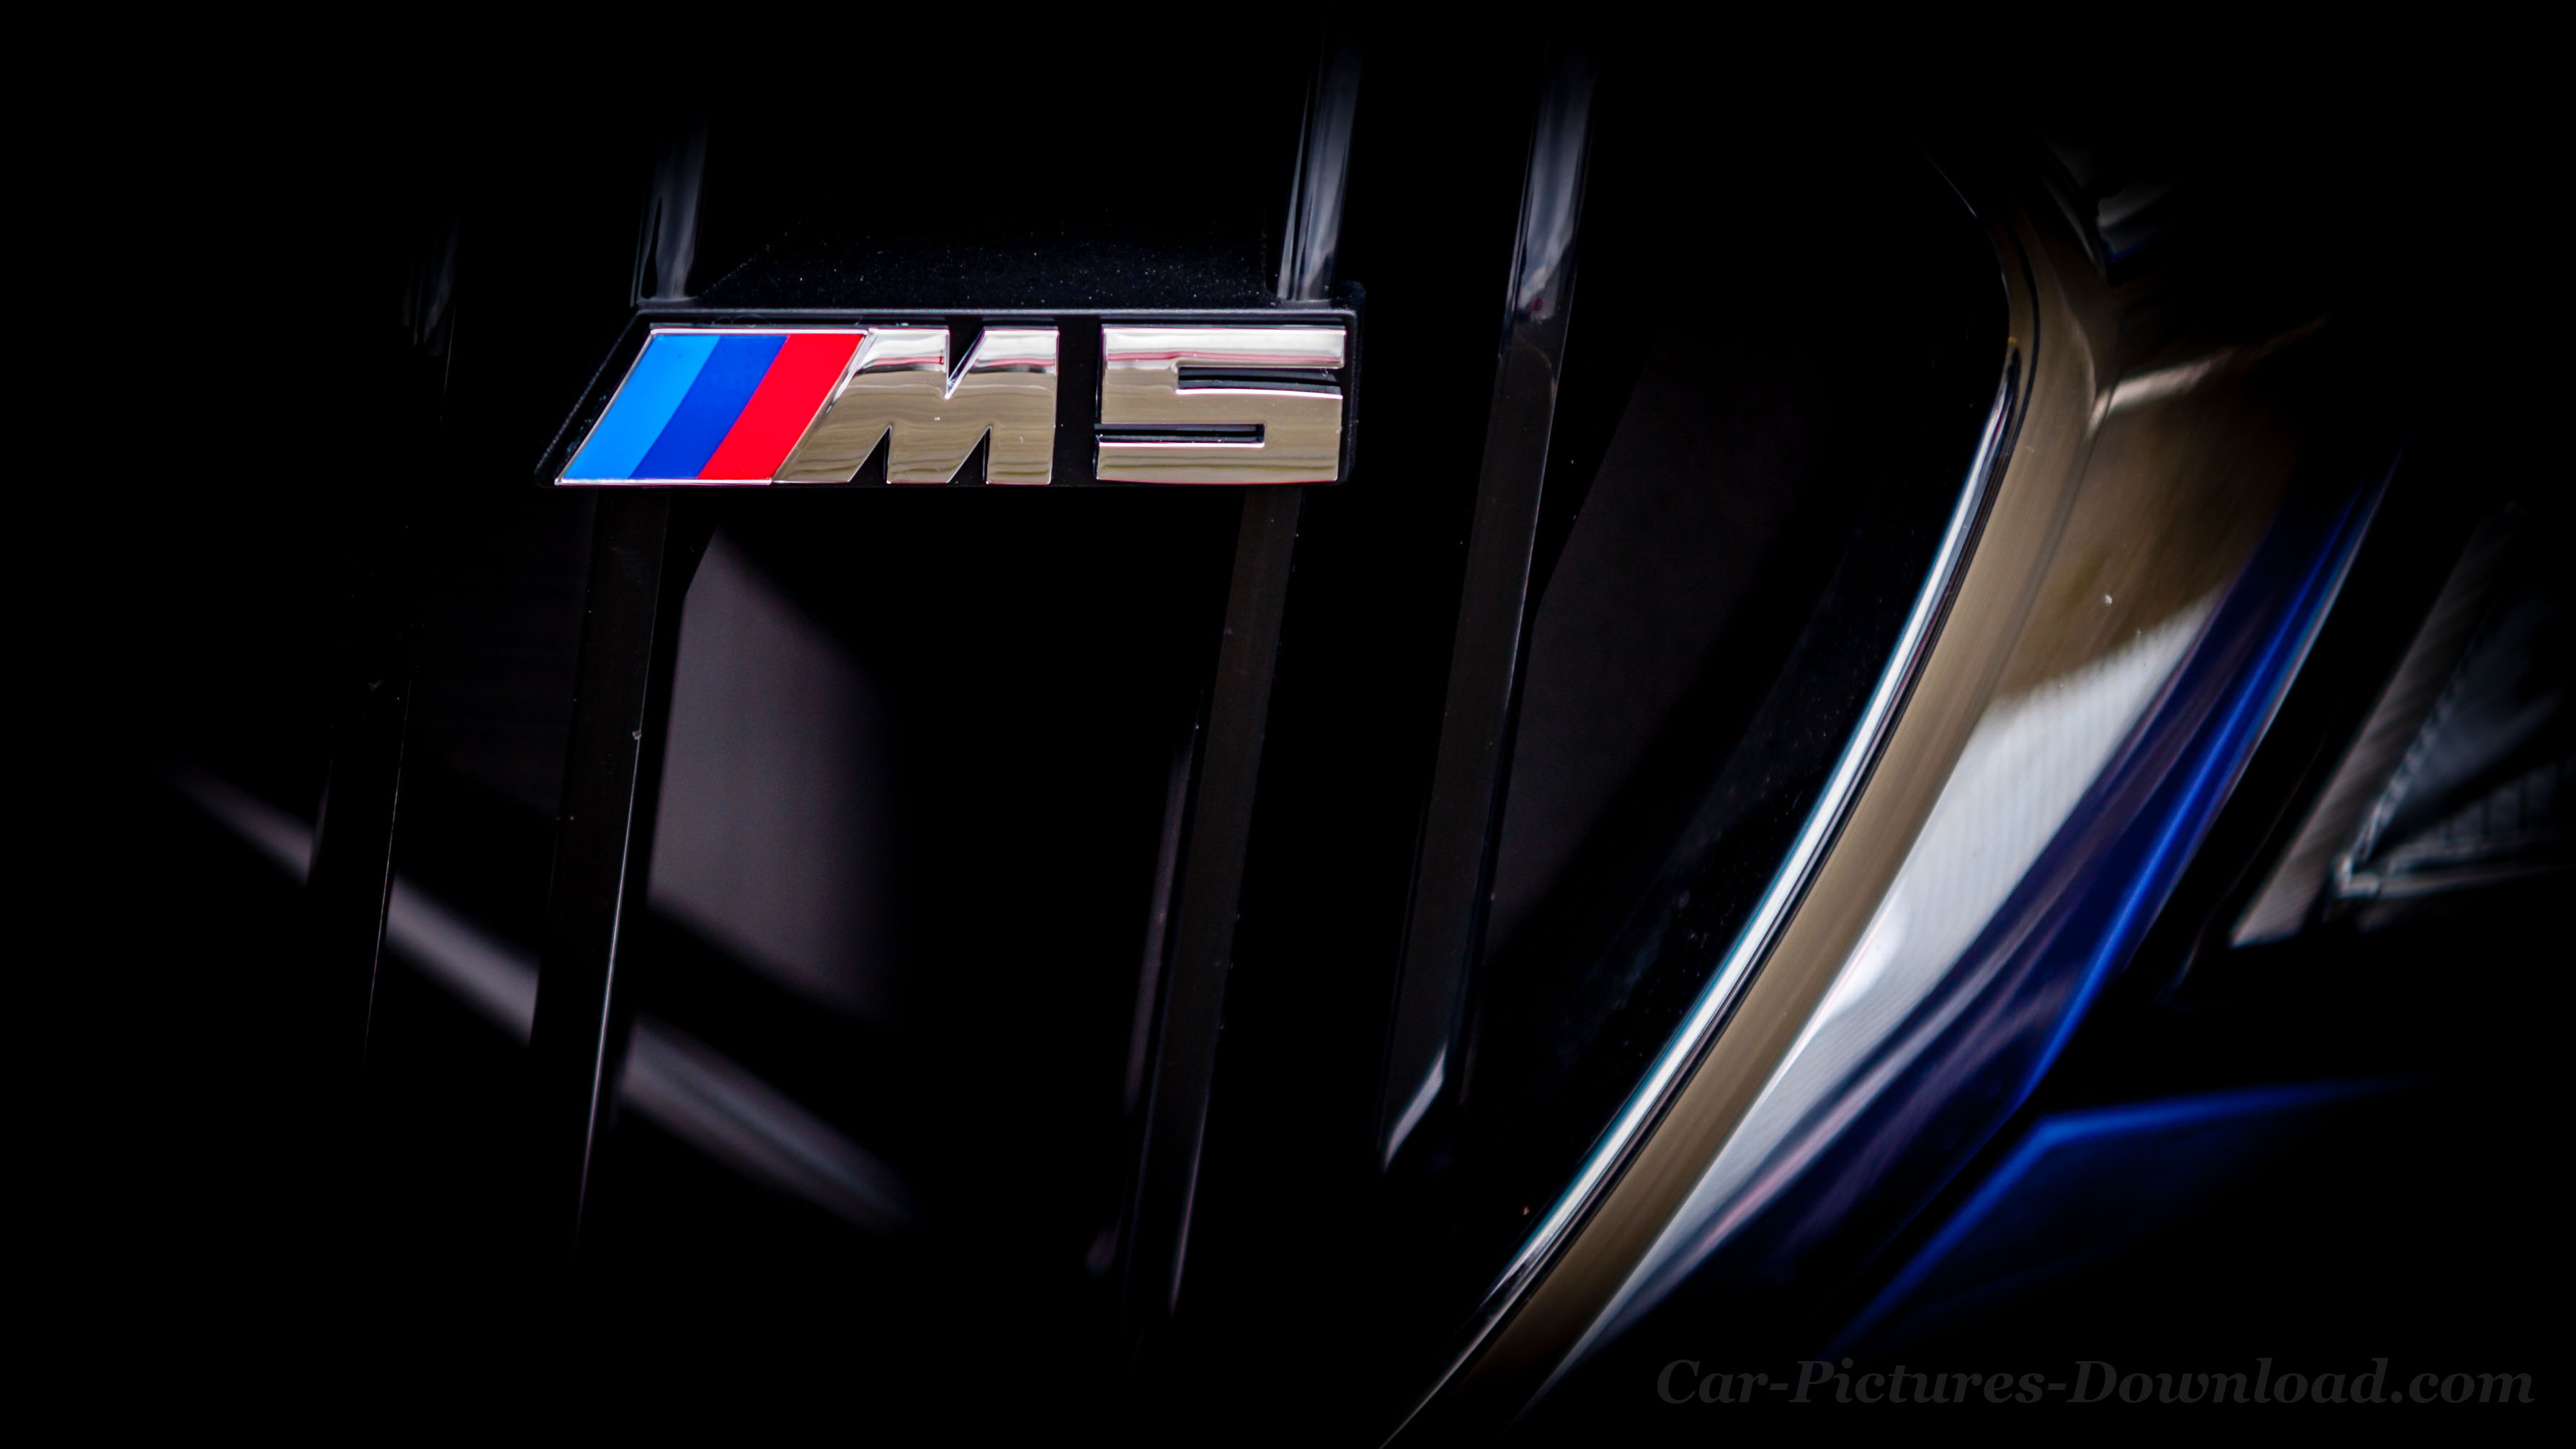 Tons of awesome bmw m3 wallpapers to download for free. Bmw M Wallpapers Wallpaper Cave Bmw M Logo 3575x2011 Download Hd Wallpaper Wallpapertip